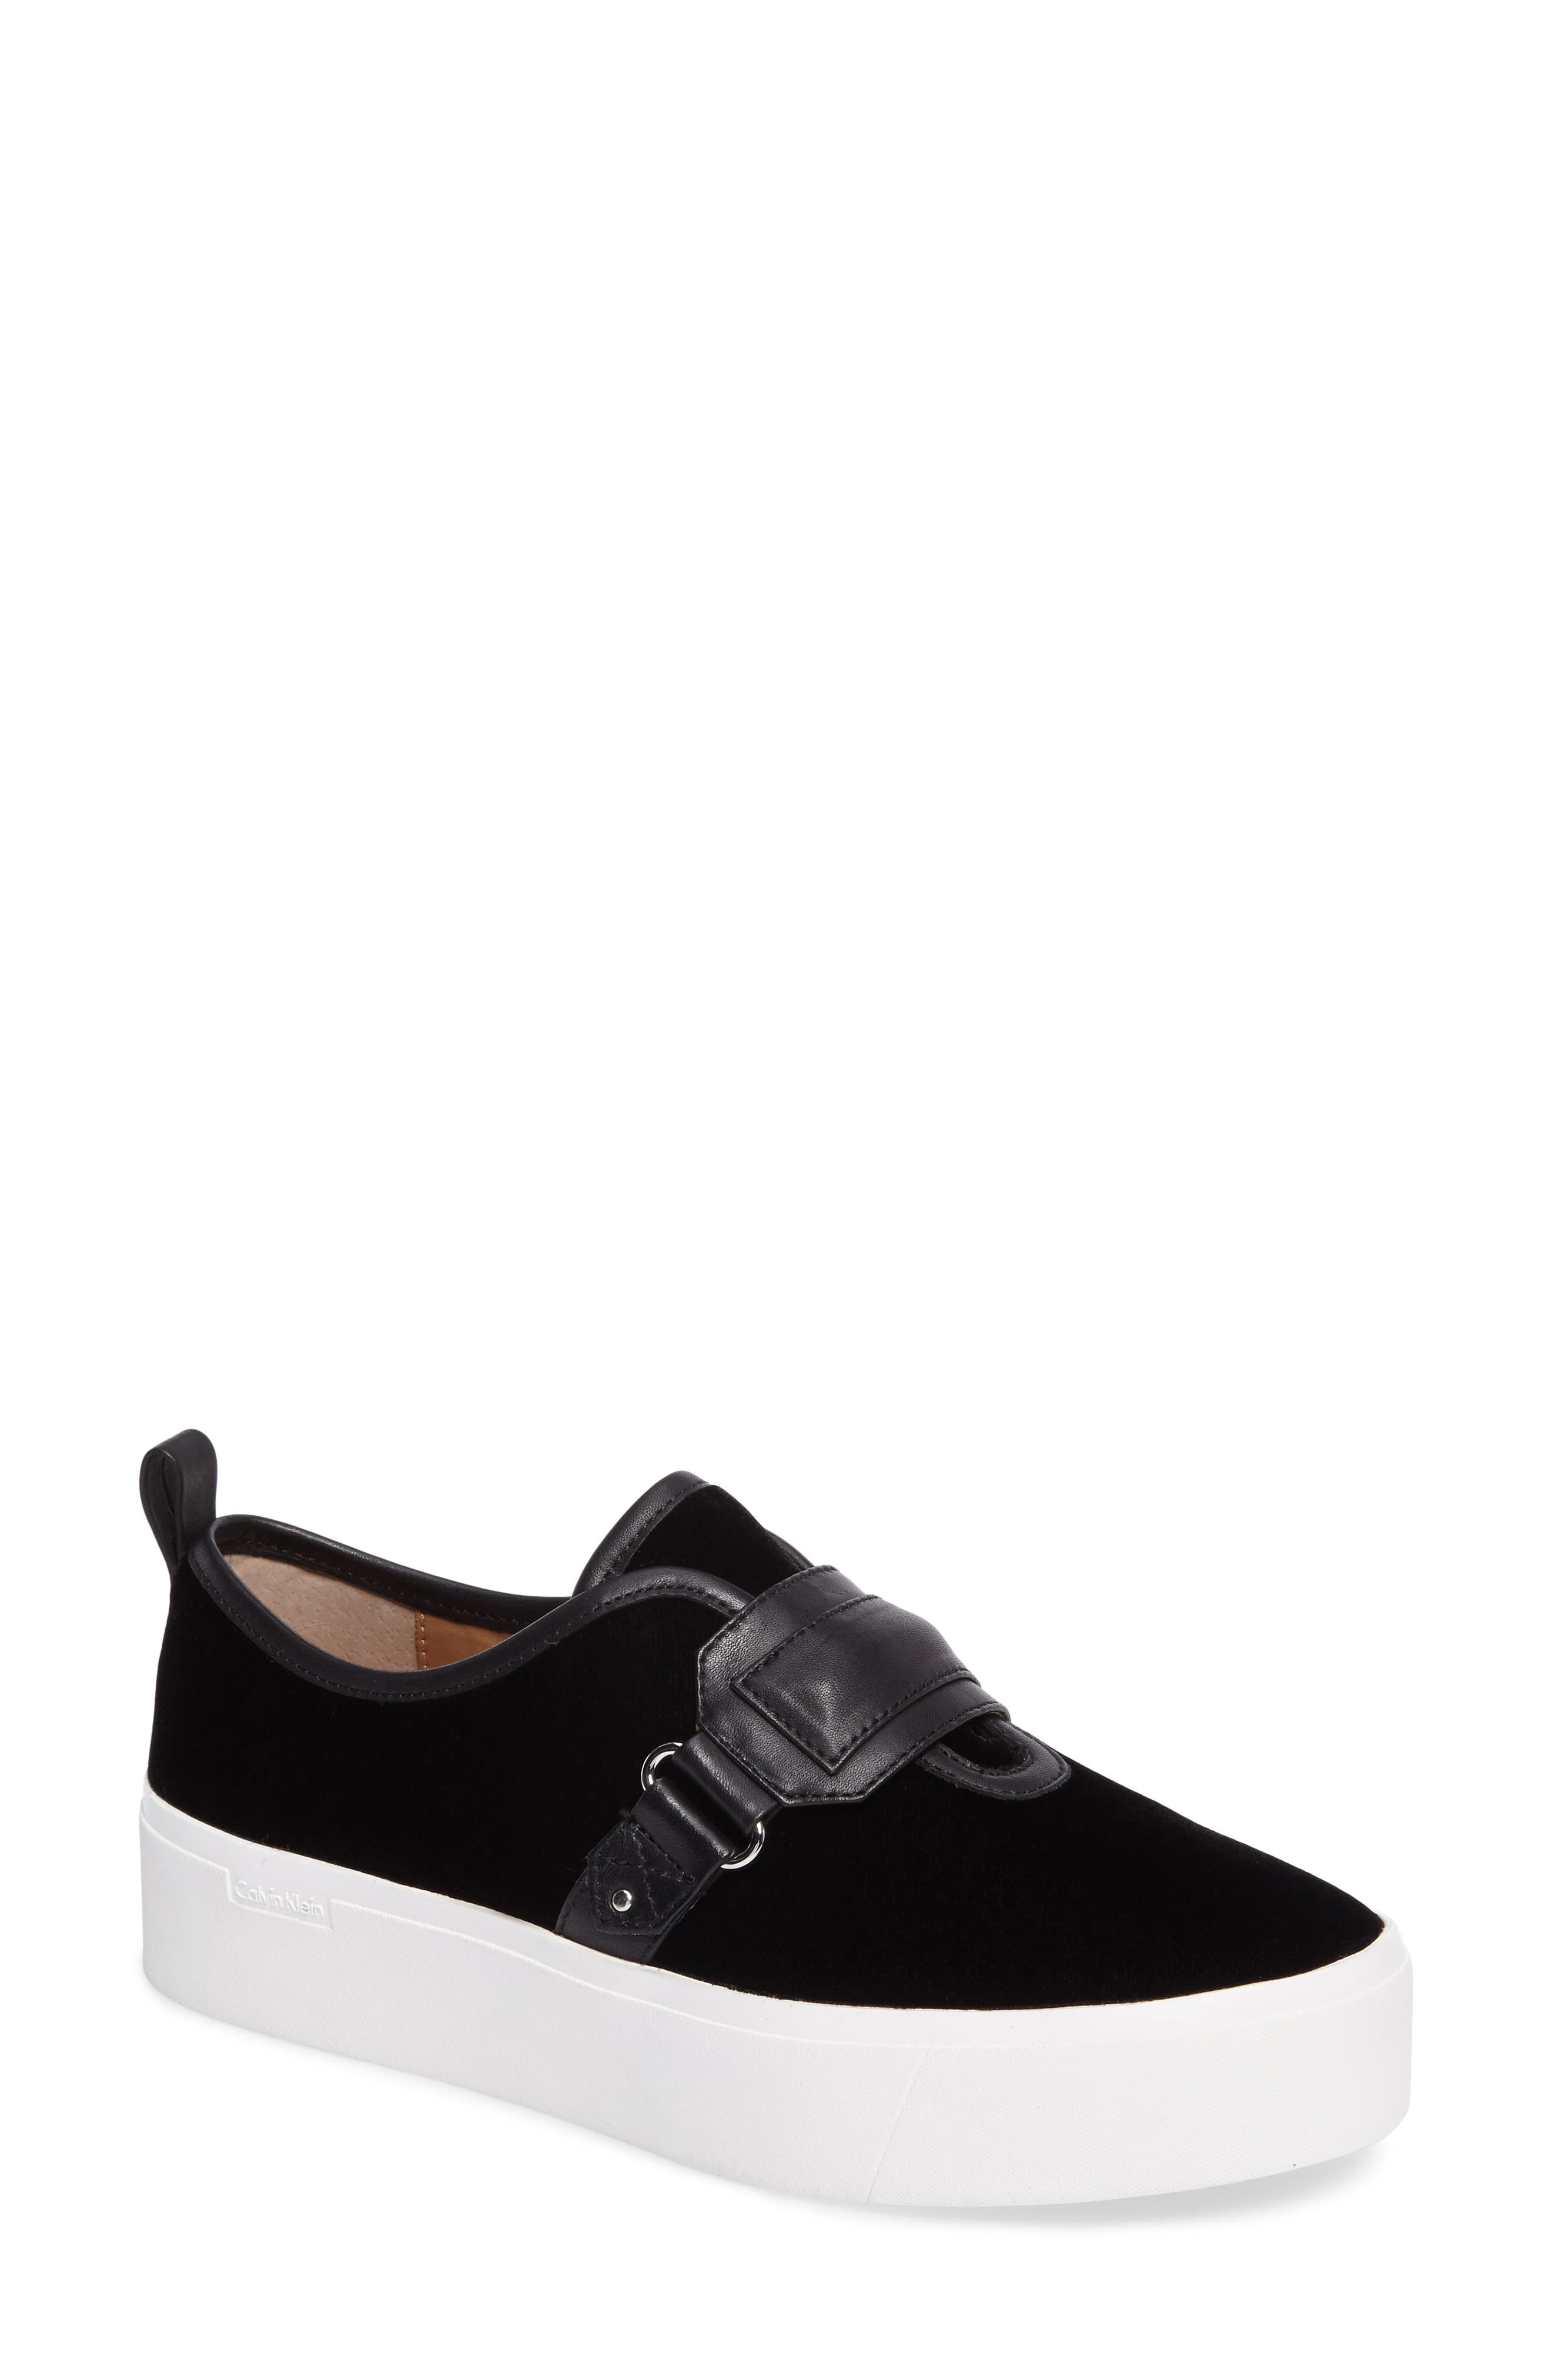 Juno Slip-On Sneaker,                         Main,                         color,